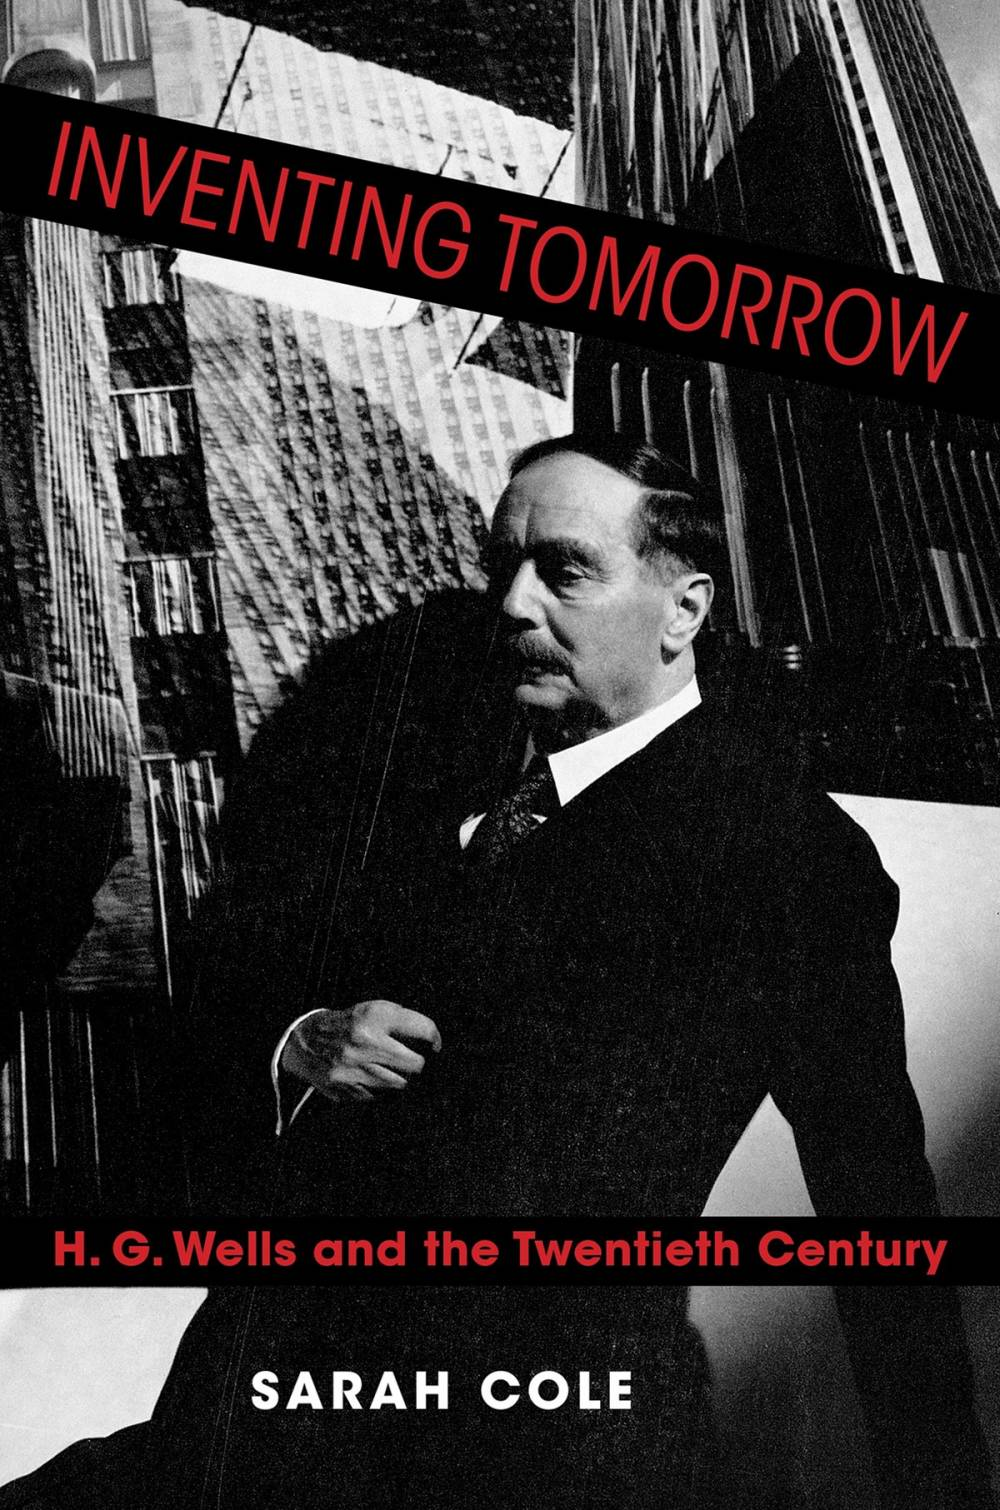 A book cover featuring a black-and-white photograph of a man wearing a suit.